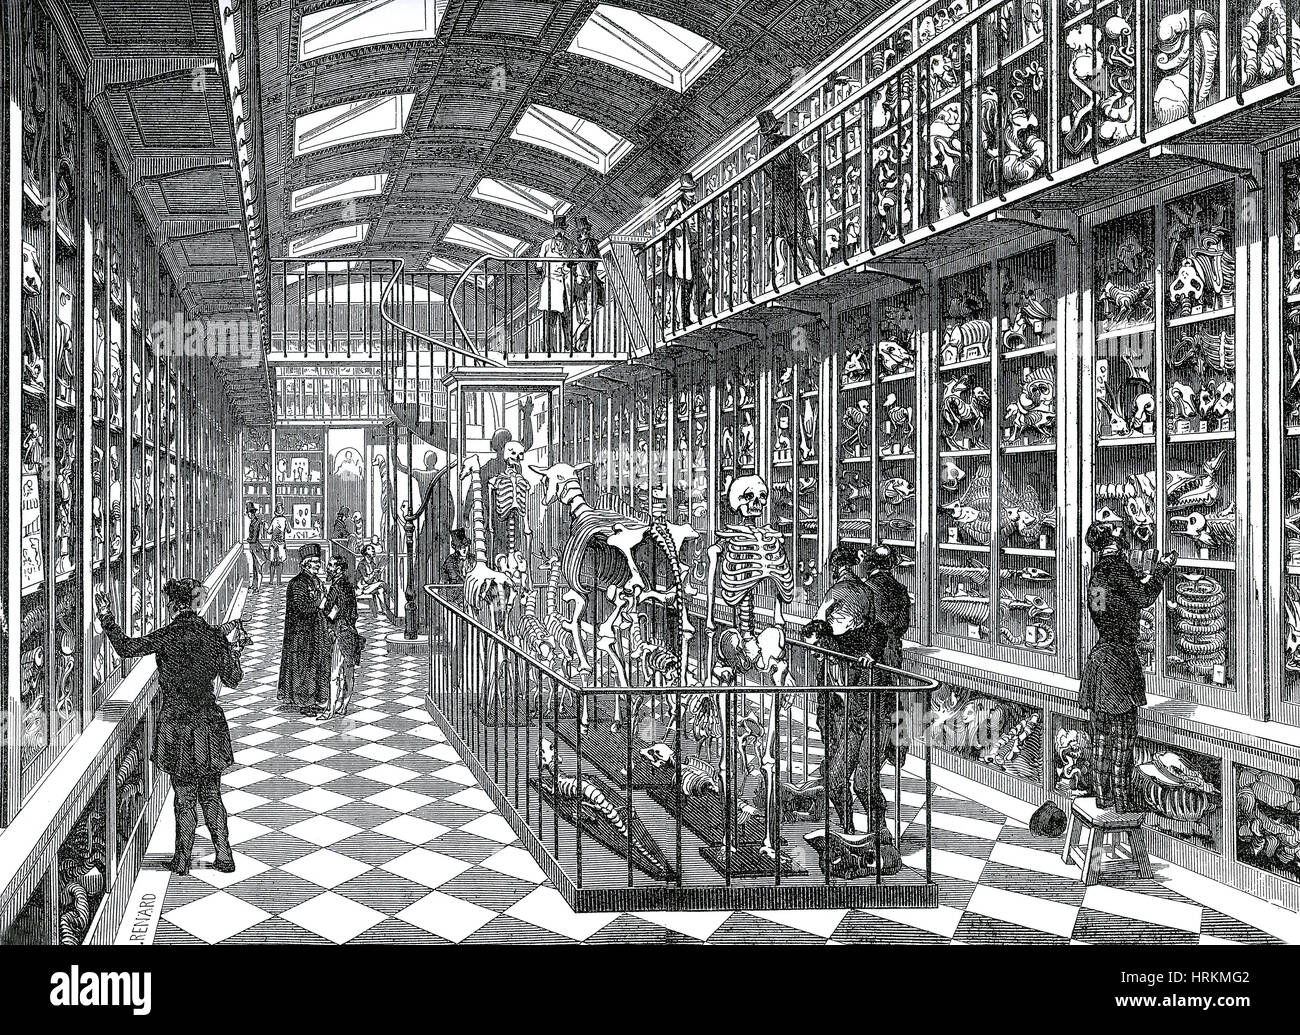 Dittrick Museum of Medical History - Stock Image